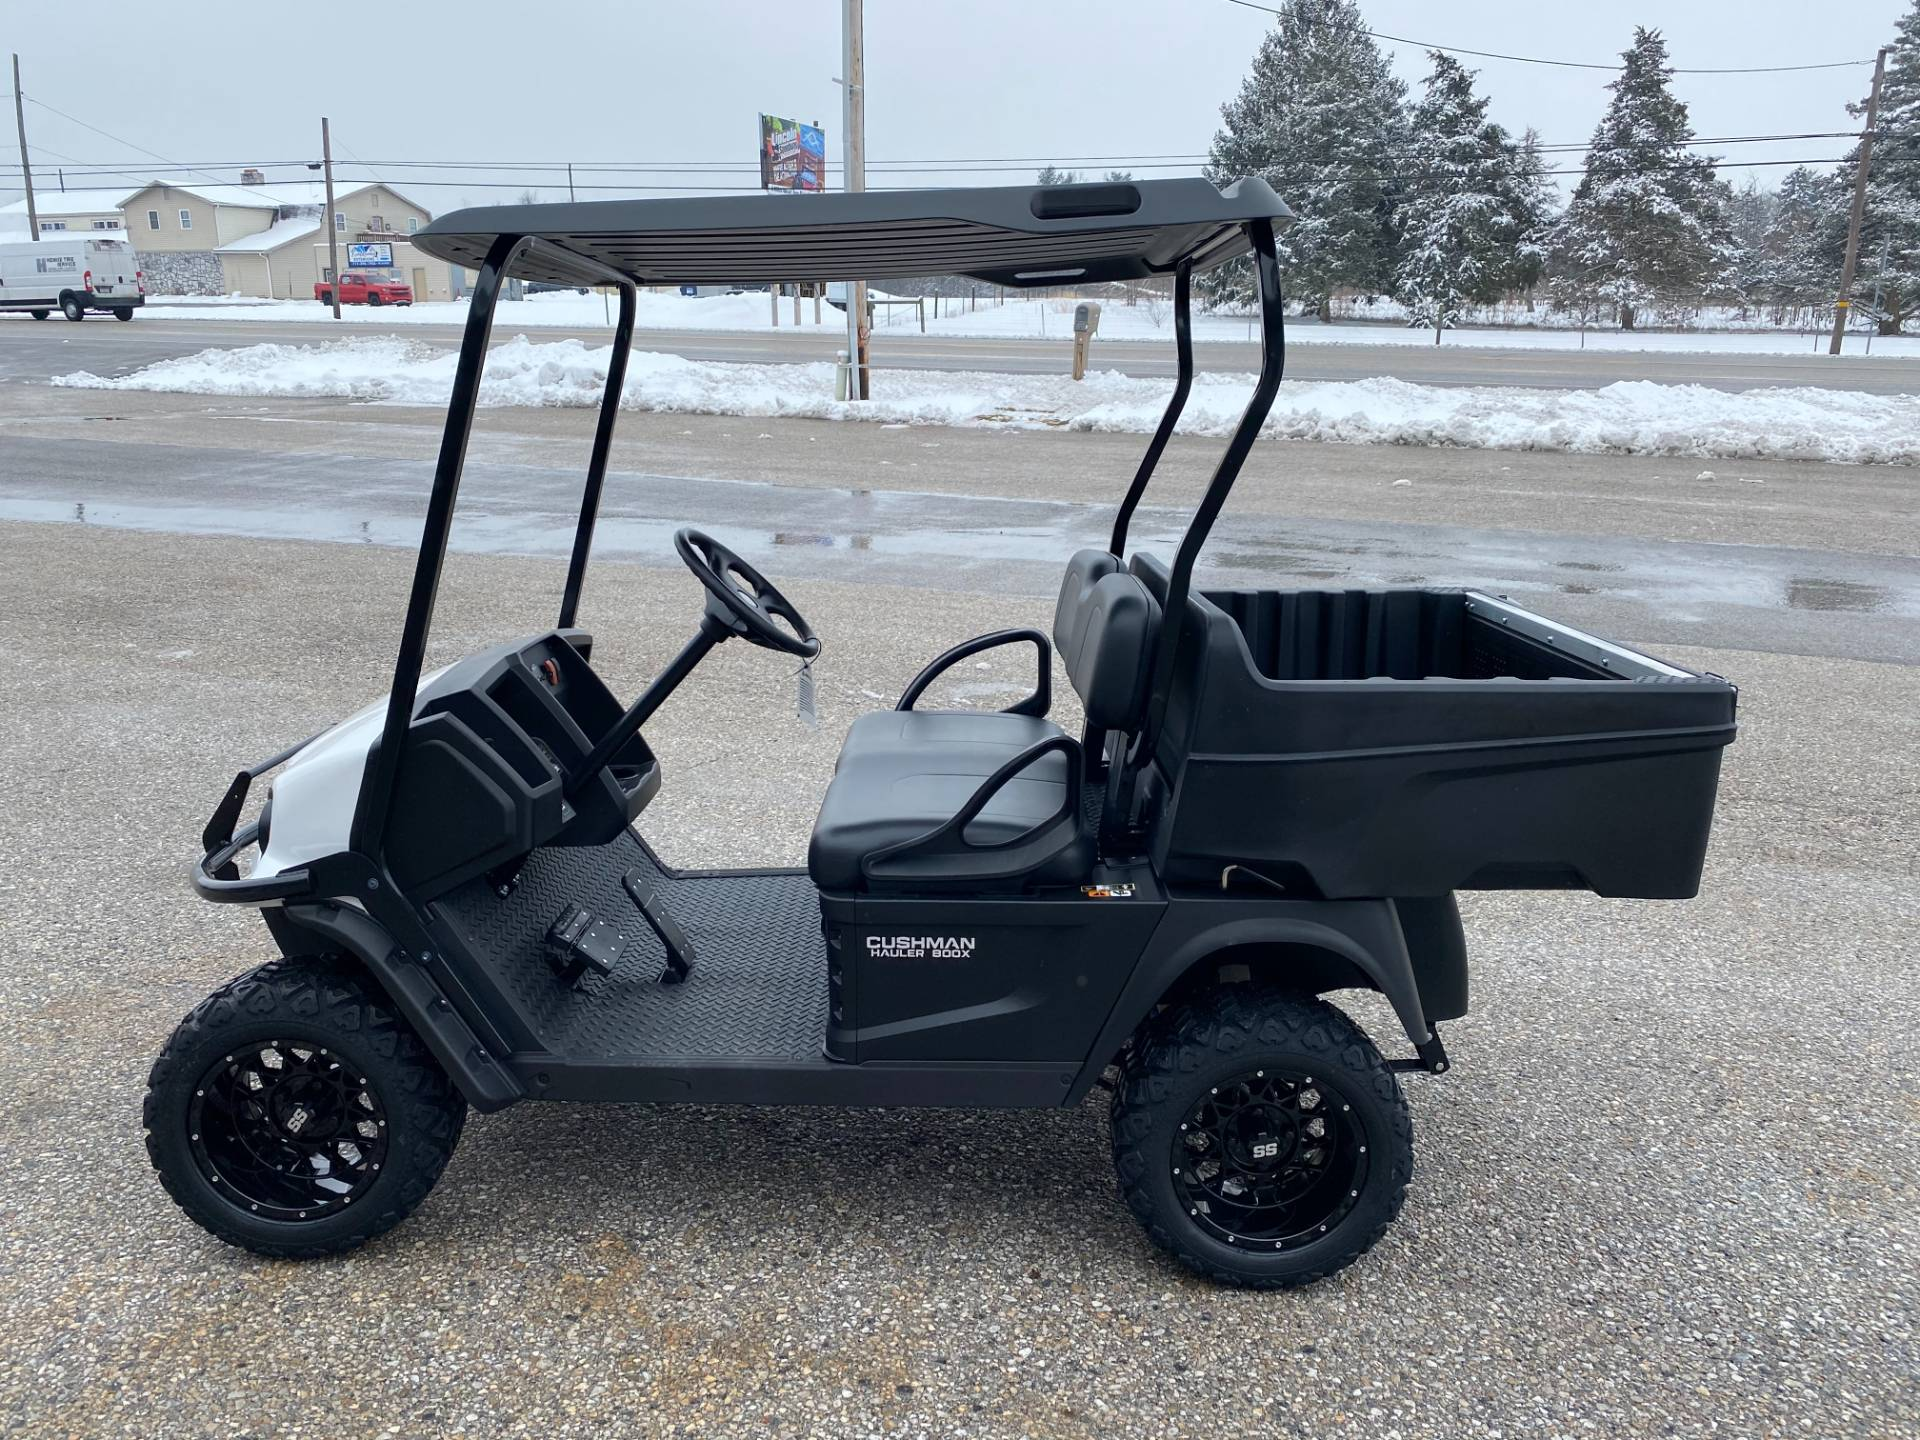 2020 Cushman HAULER 800X ELECTRIC in New Oxford, Pennsylvania - Photo 2